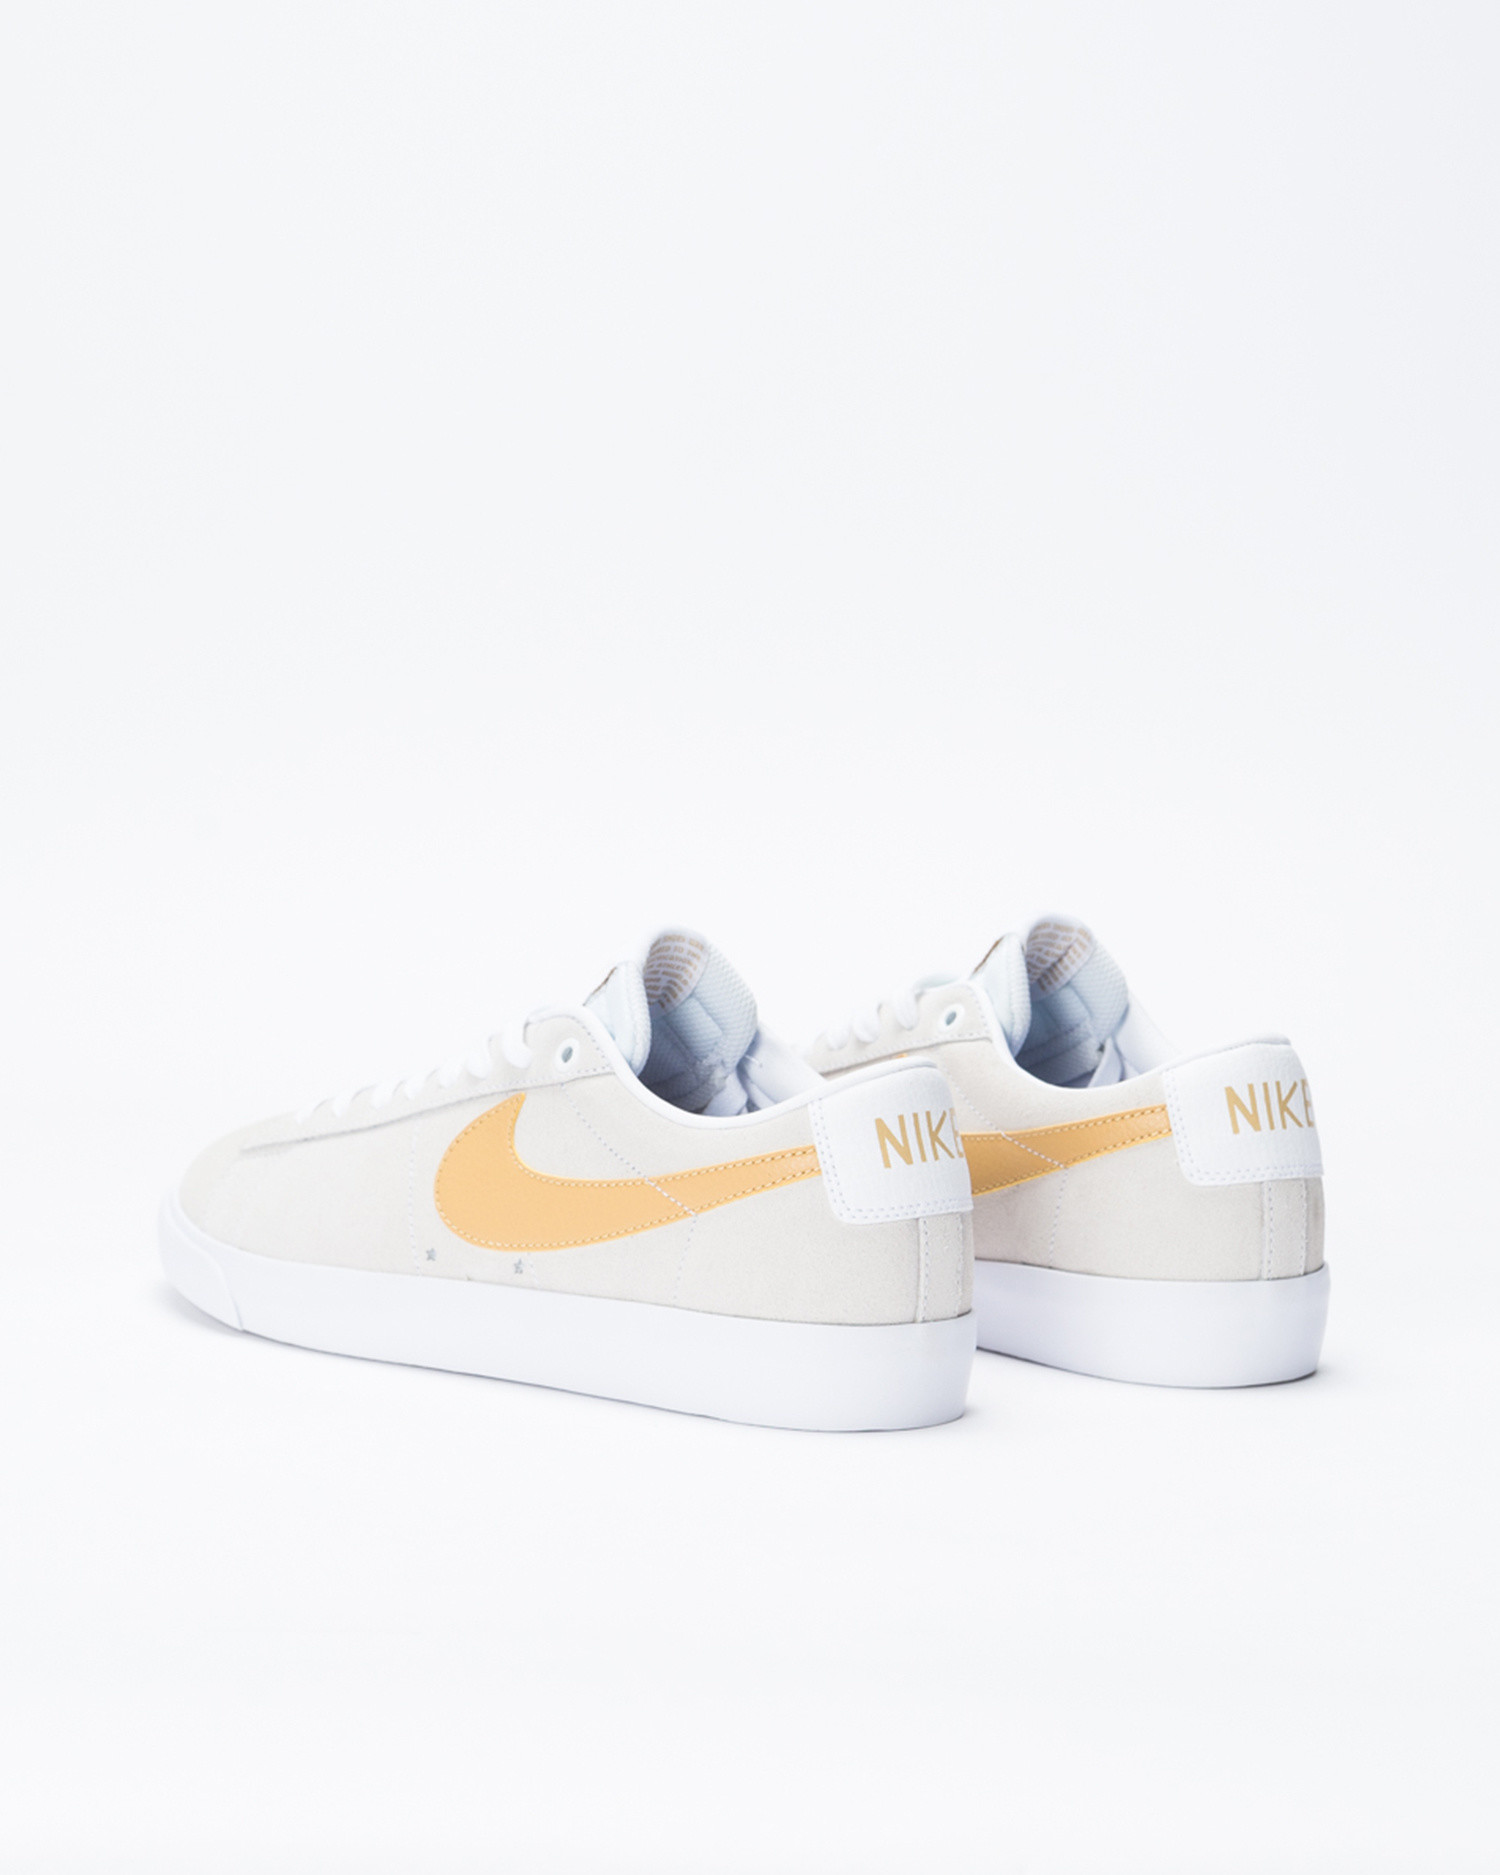 Nike SB Blazer Low GT White/Club Gold-White-Light-Thistle